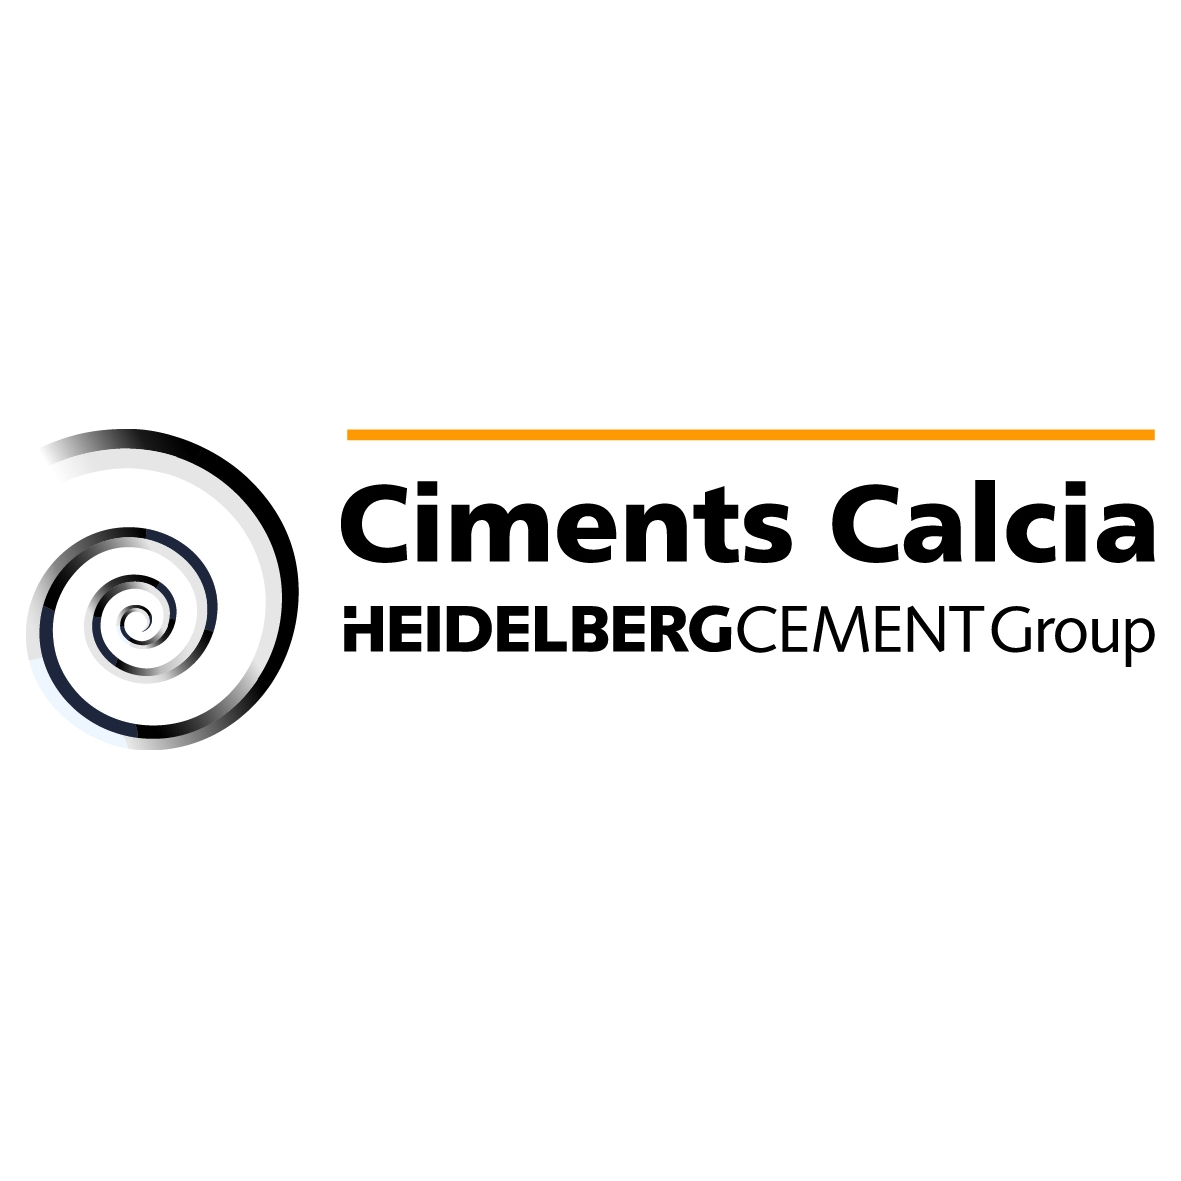 Ciments Calcia